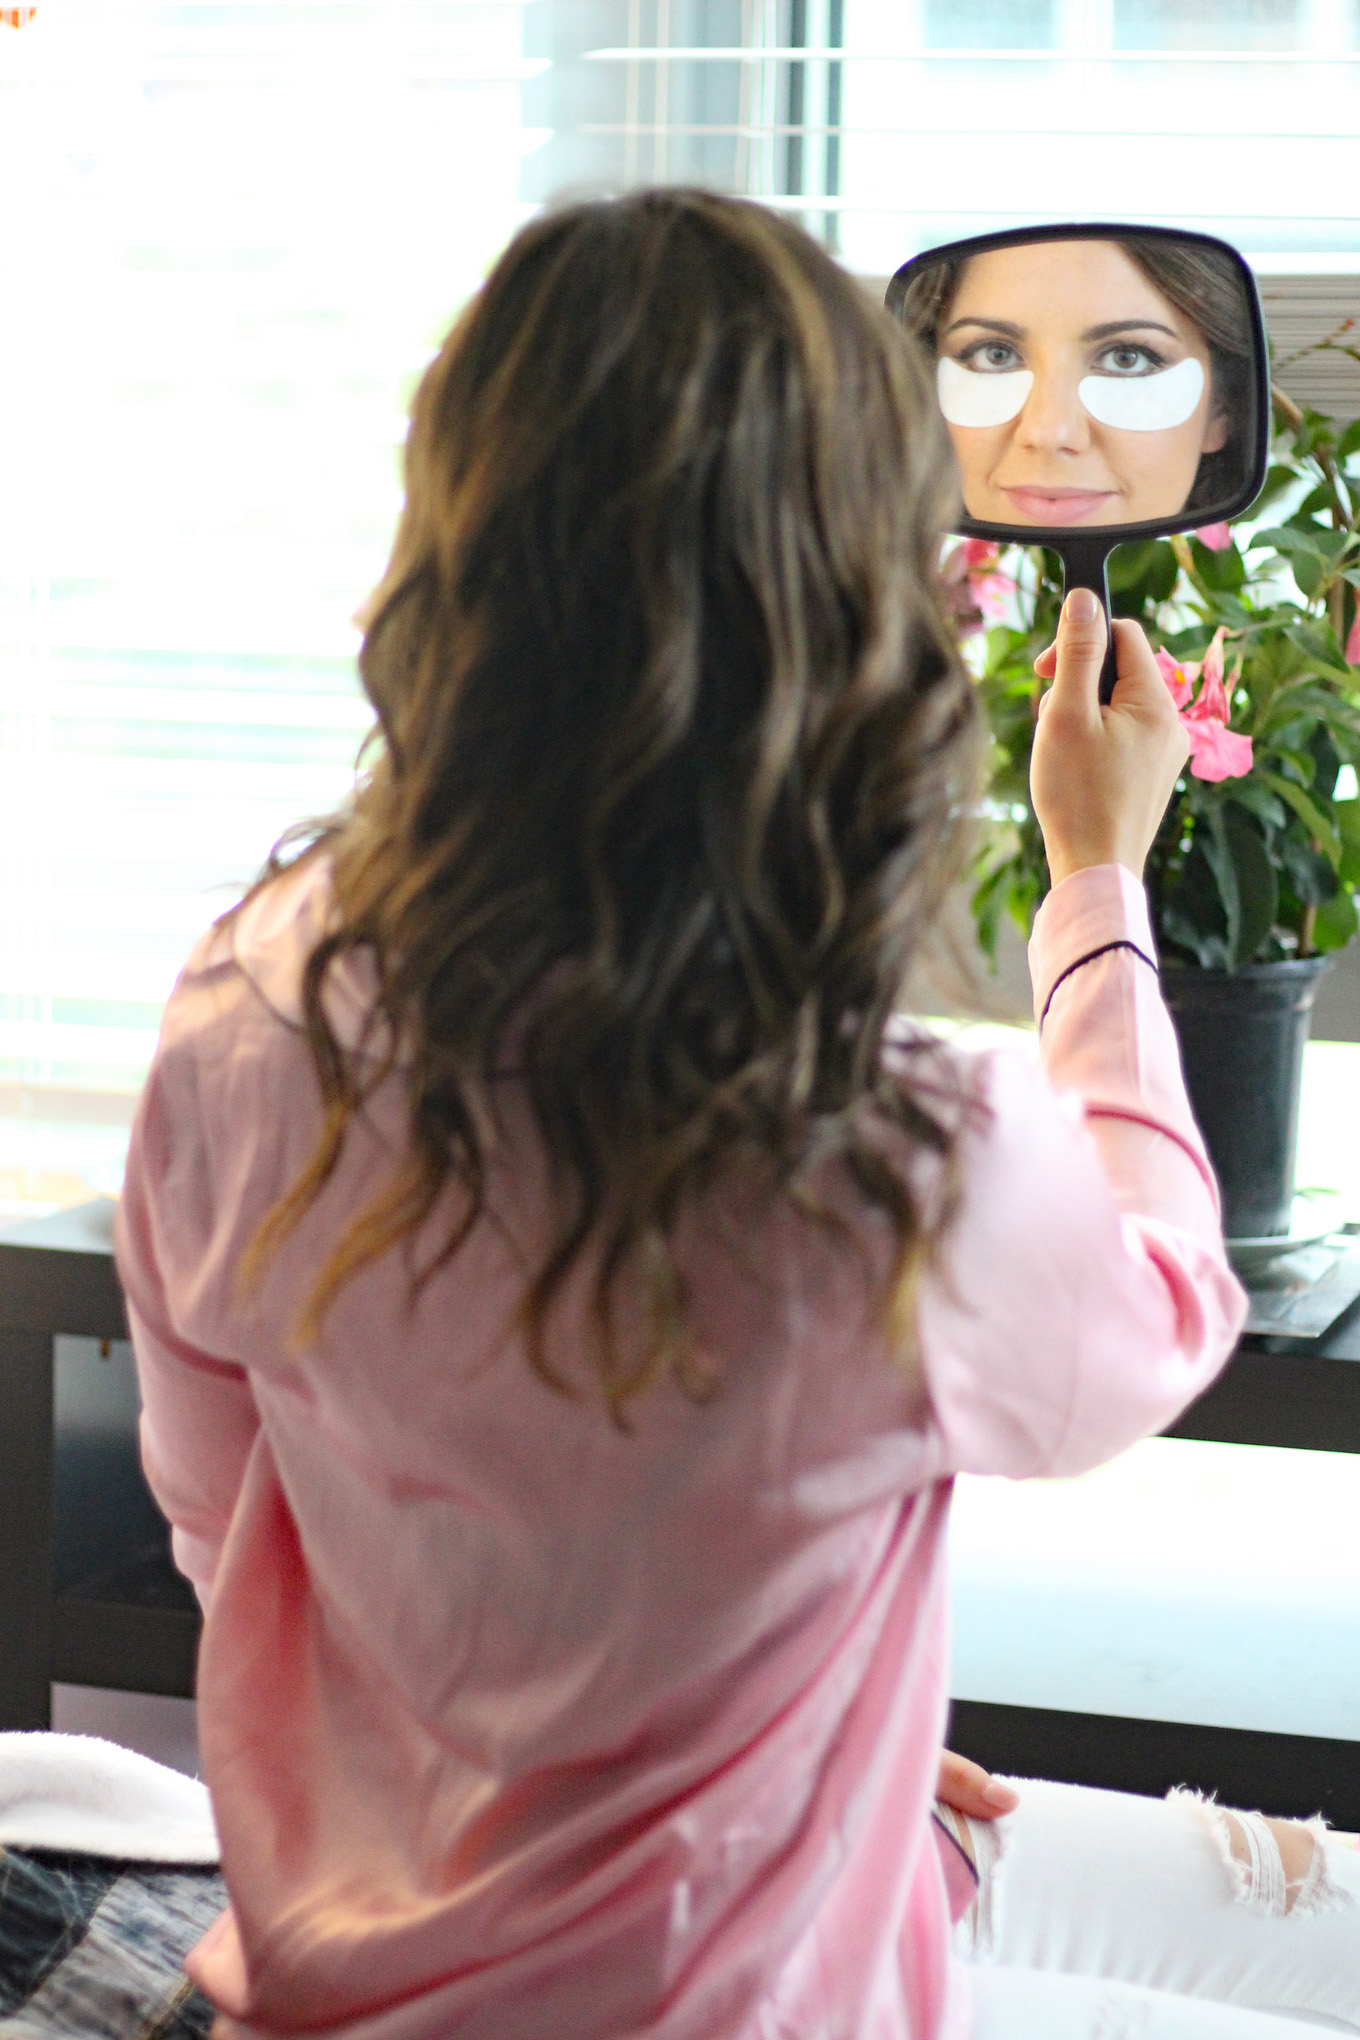 Lifestyle blogger Roxanne of Glass of Glam's ways to look and feel energized with Viicode gel eye masks